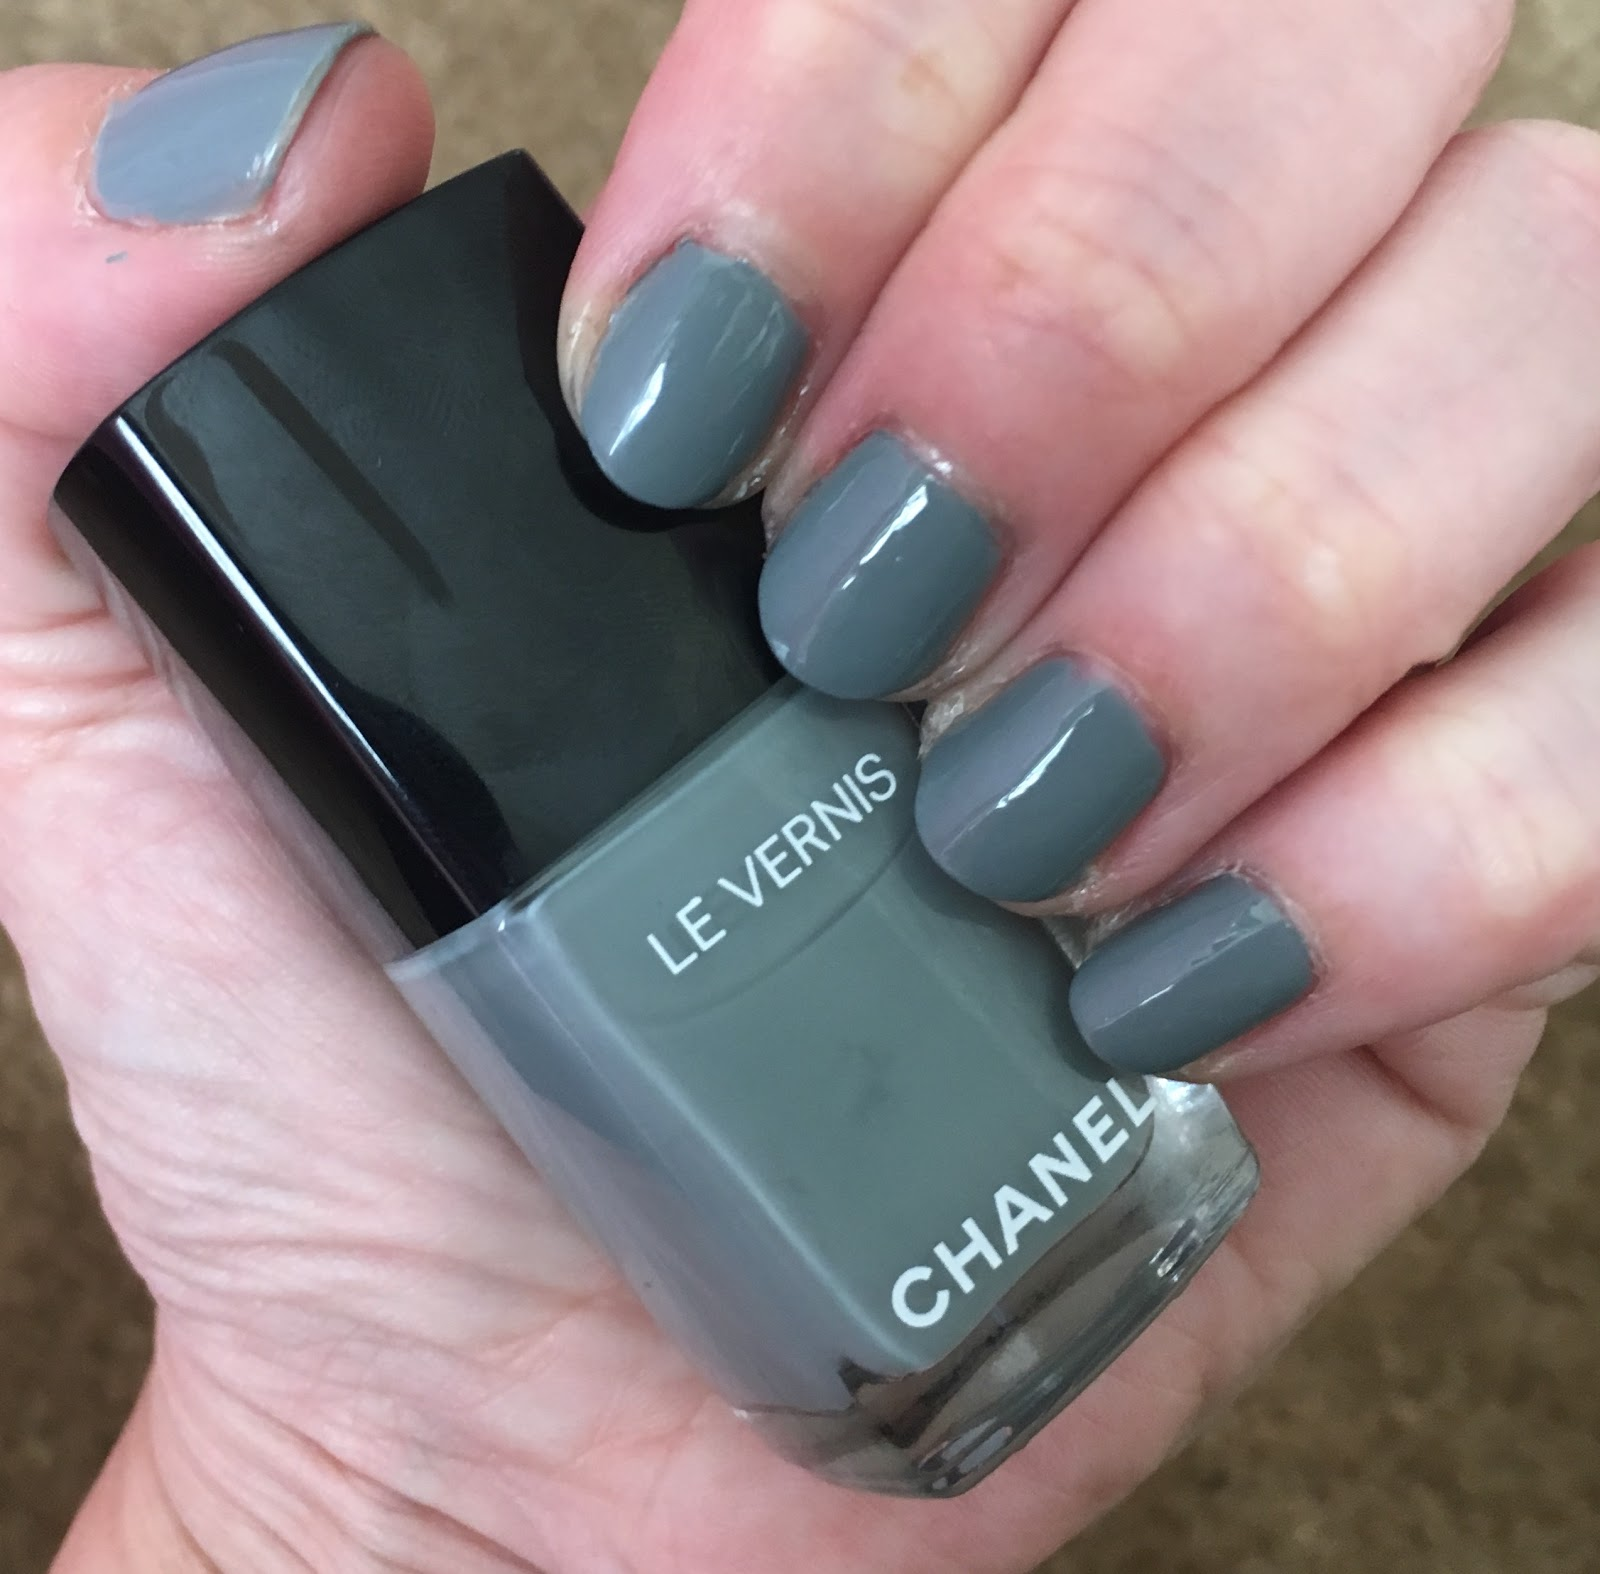 The Beauty Of Life: #ManiMonday: Chanel Le Vernis In